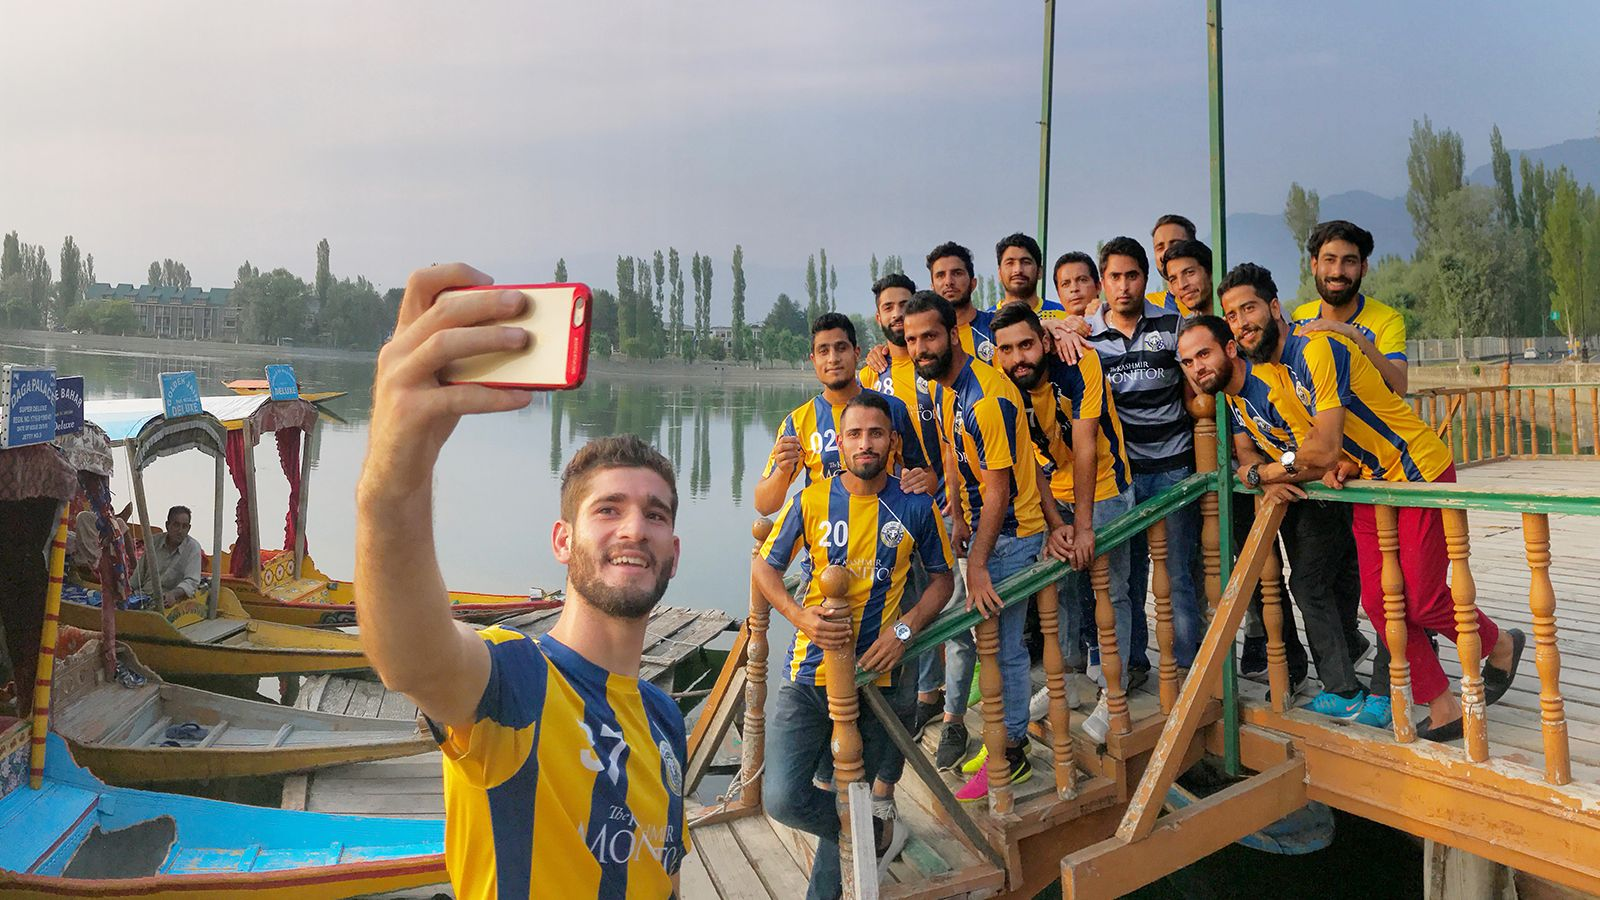 Un-Real Kashmir - A football club gives hope to the